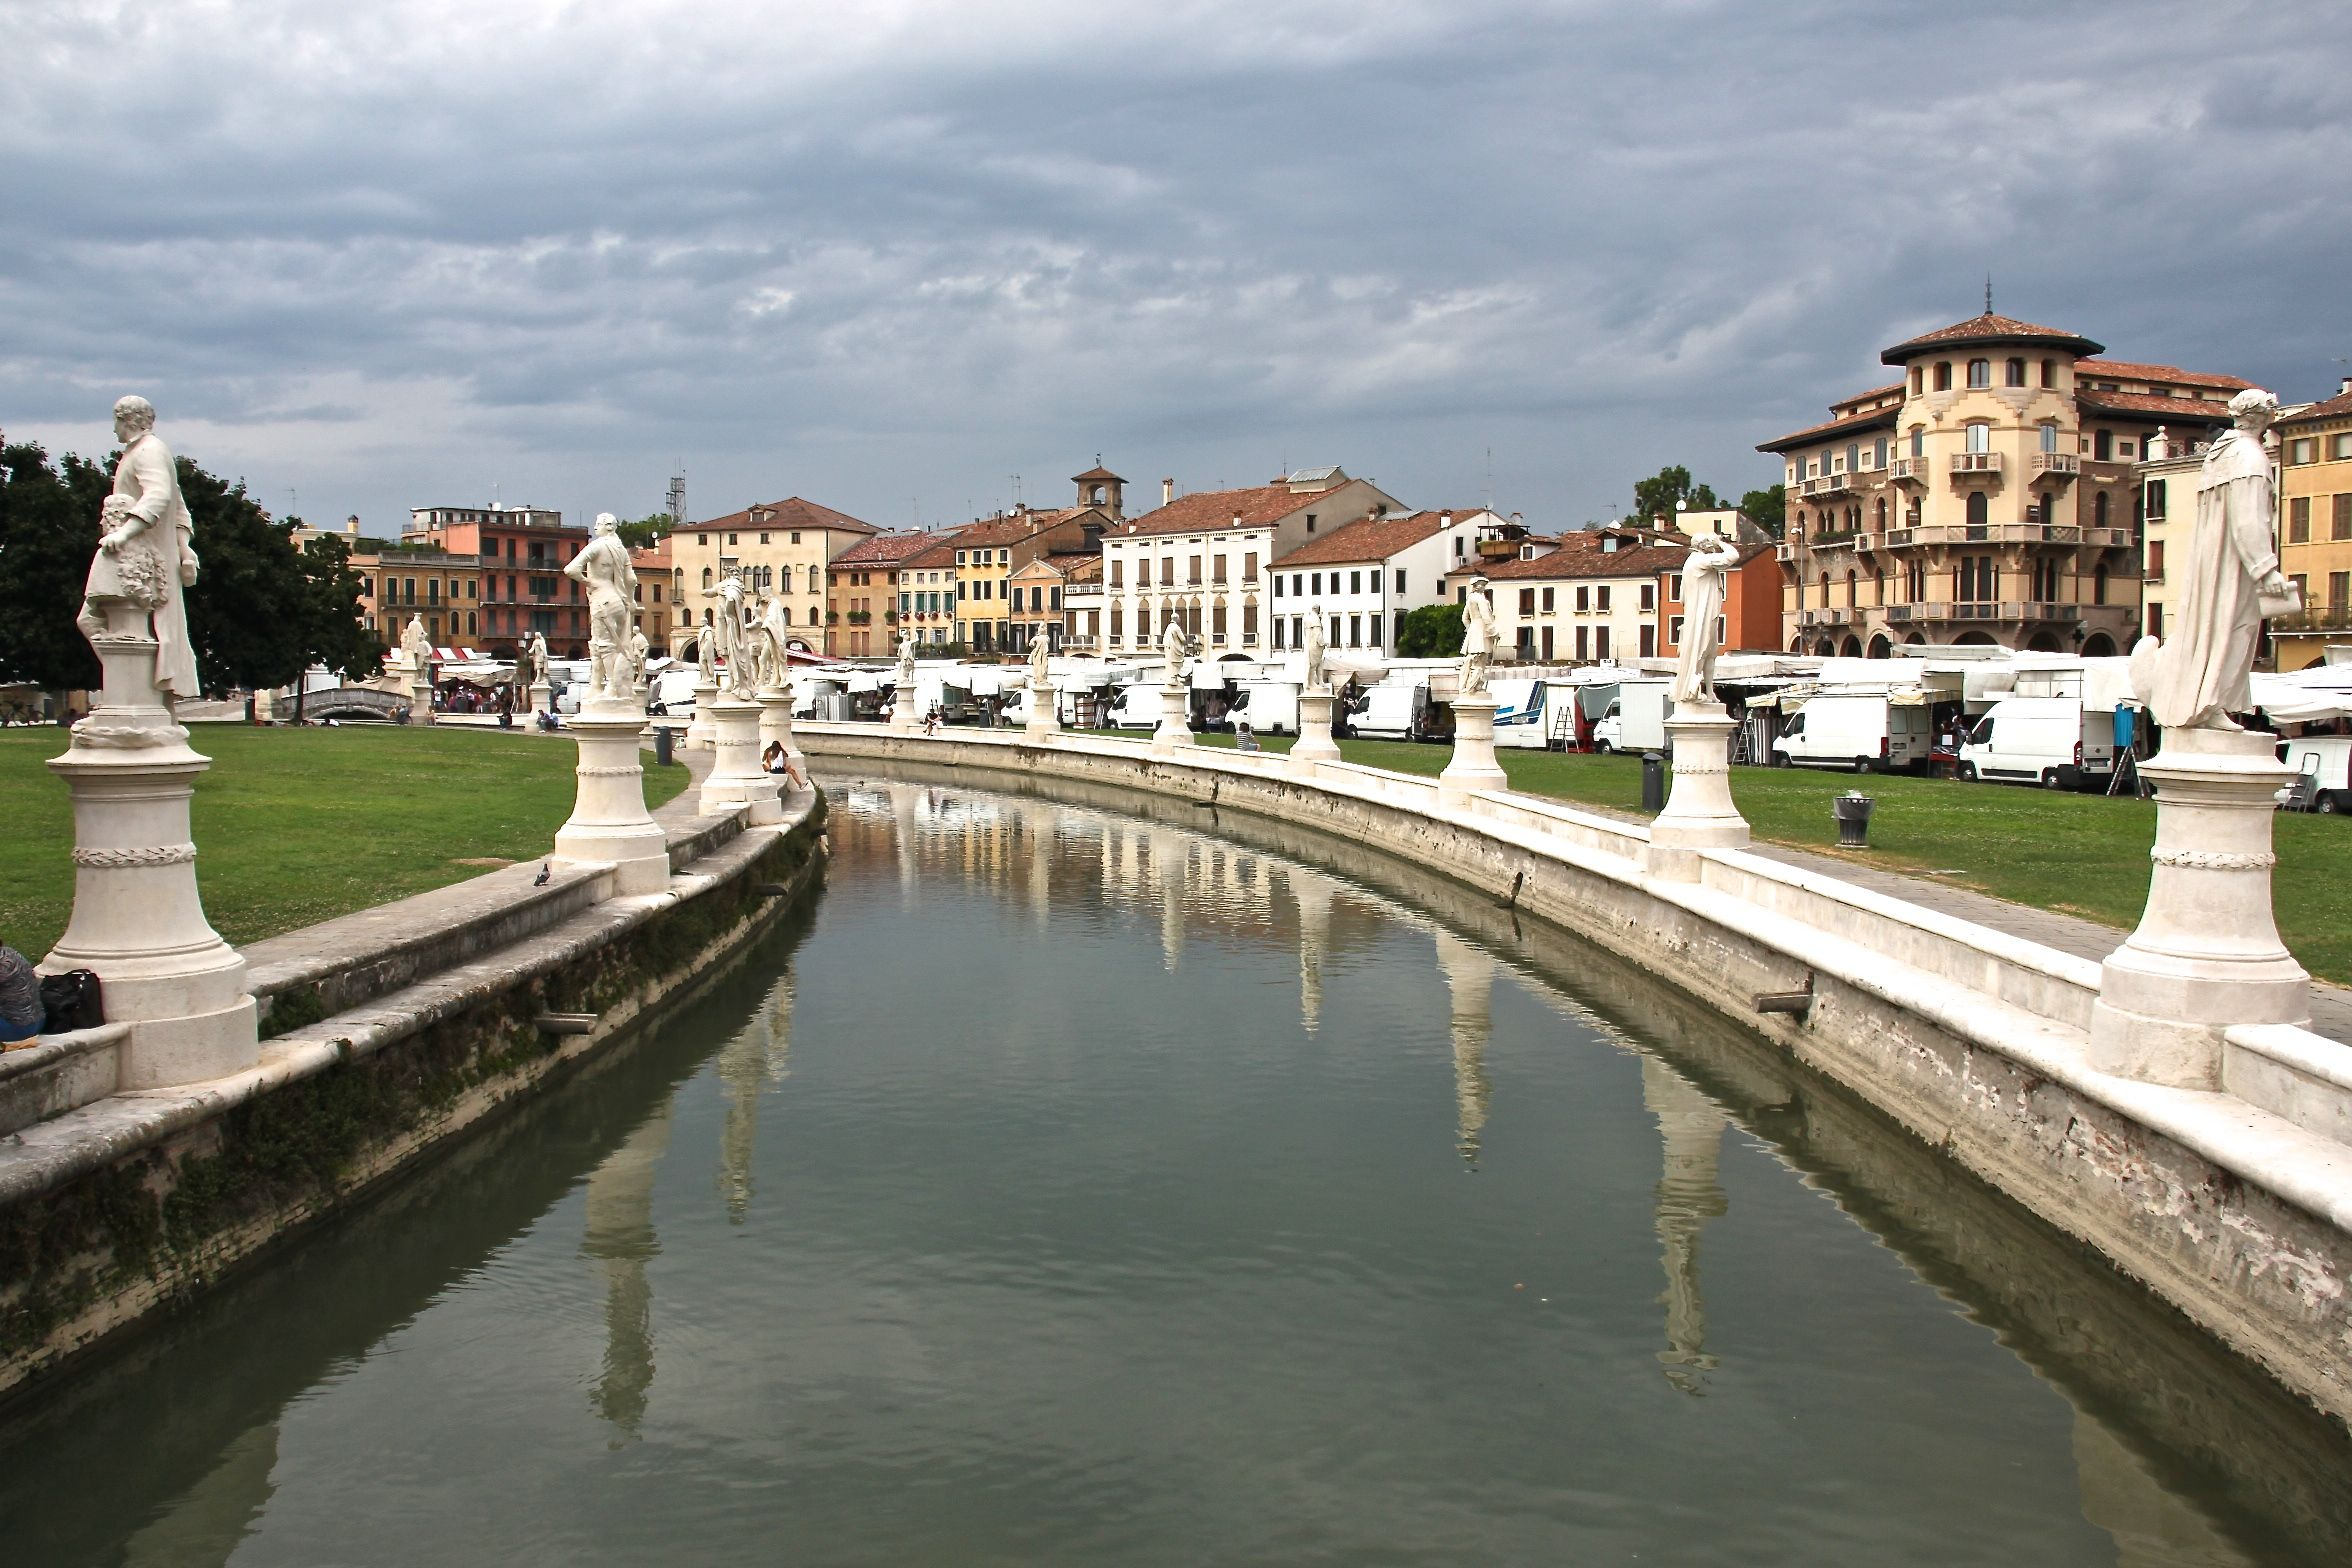 Padua's monumental Prato della Valle on market day